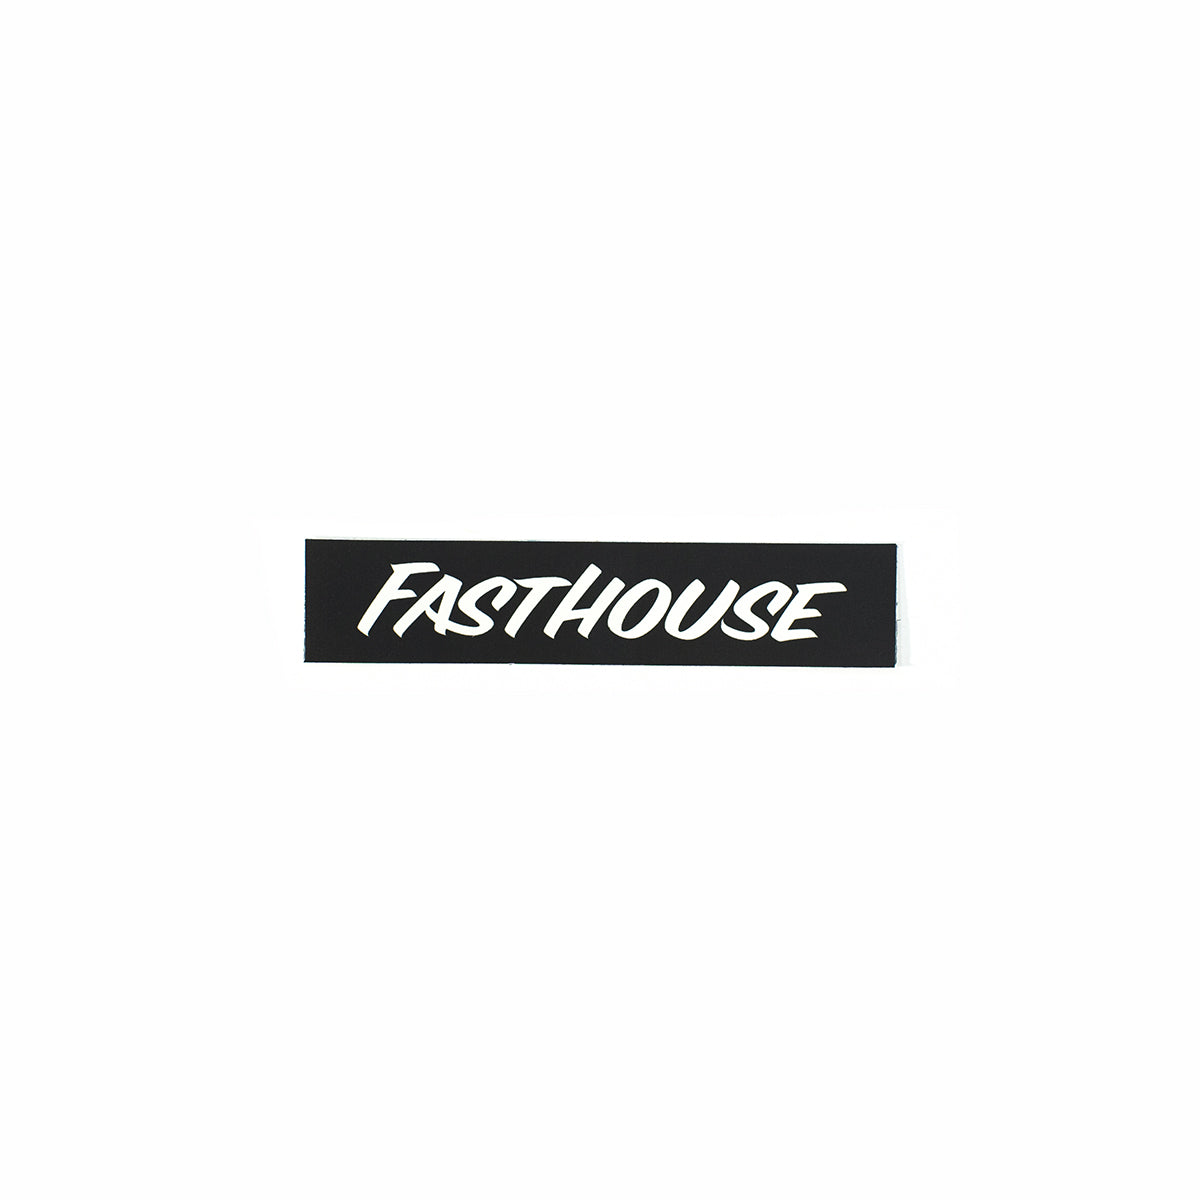 Fasthouse - Black Logo Sticker